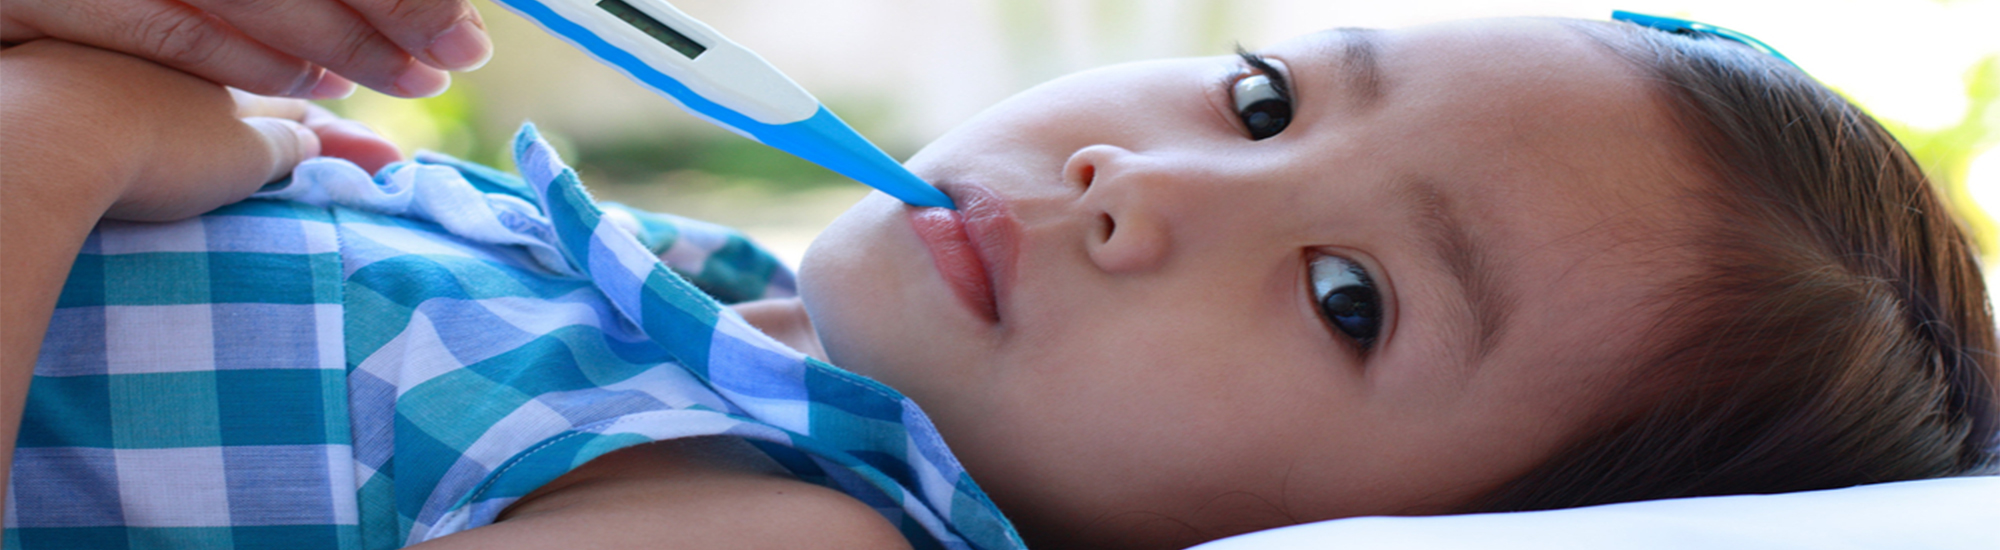 Ayurvedic treatment for What is Fever in kids